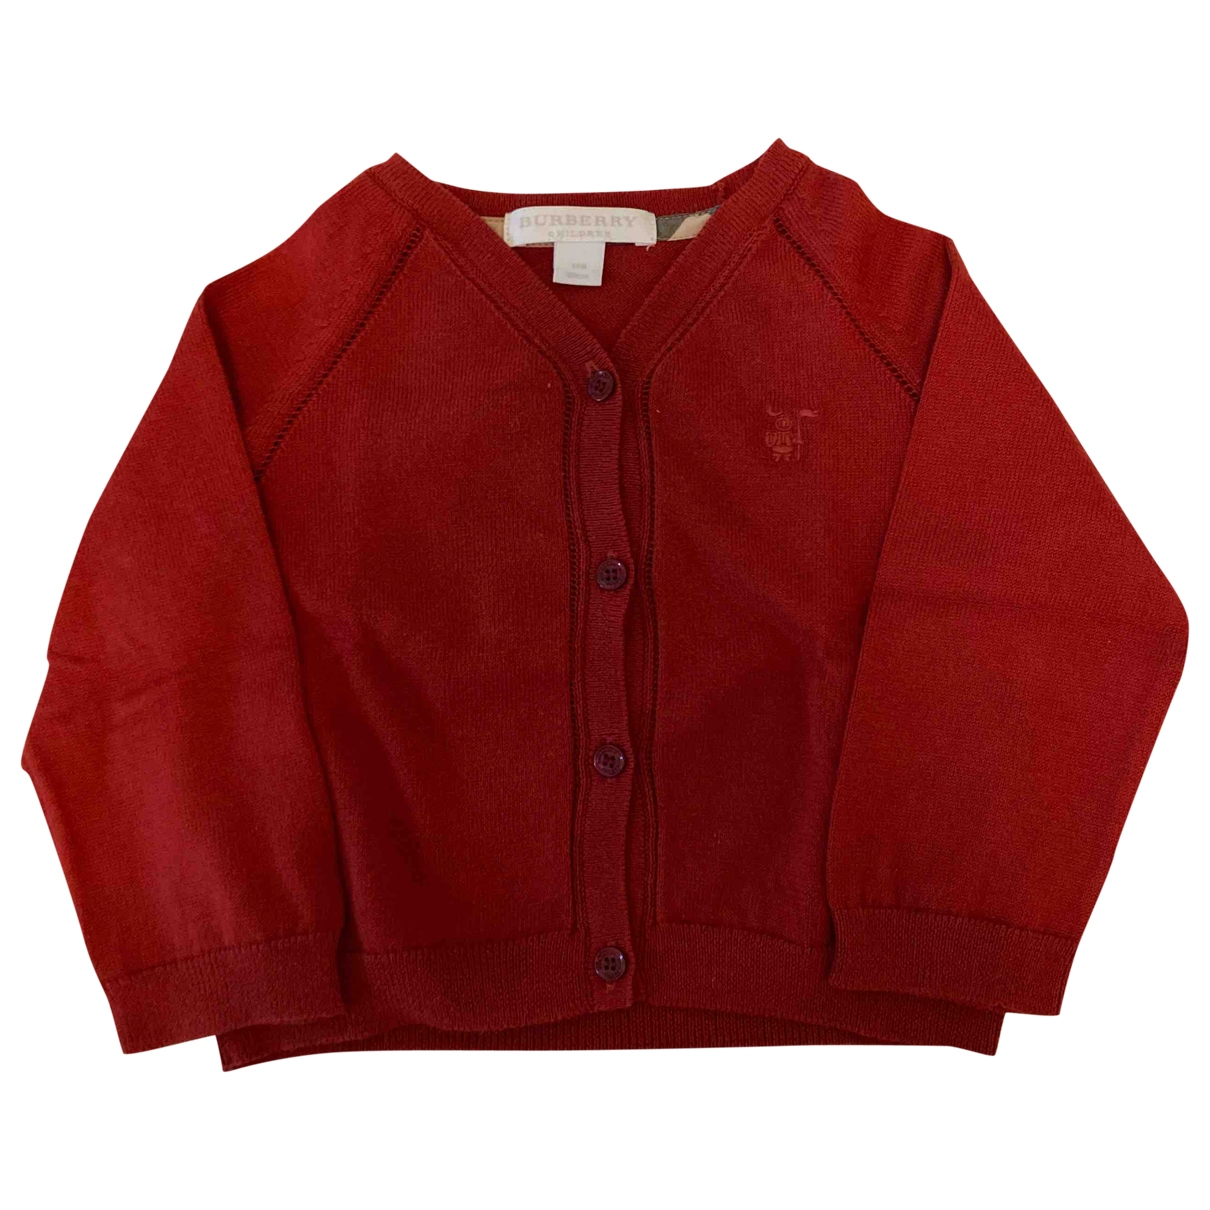 Burberry \N Burgundy Cotton Knitwear for Kids 12 months - until 29 inches UK